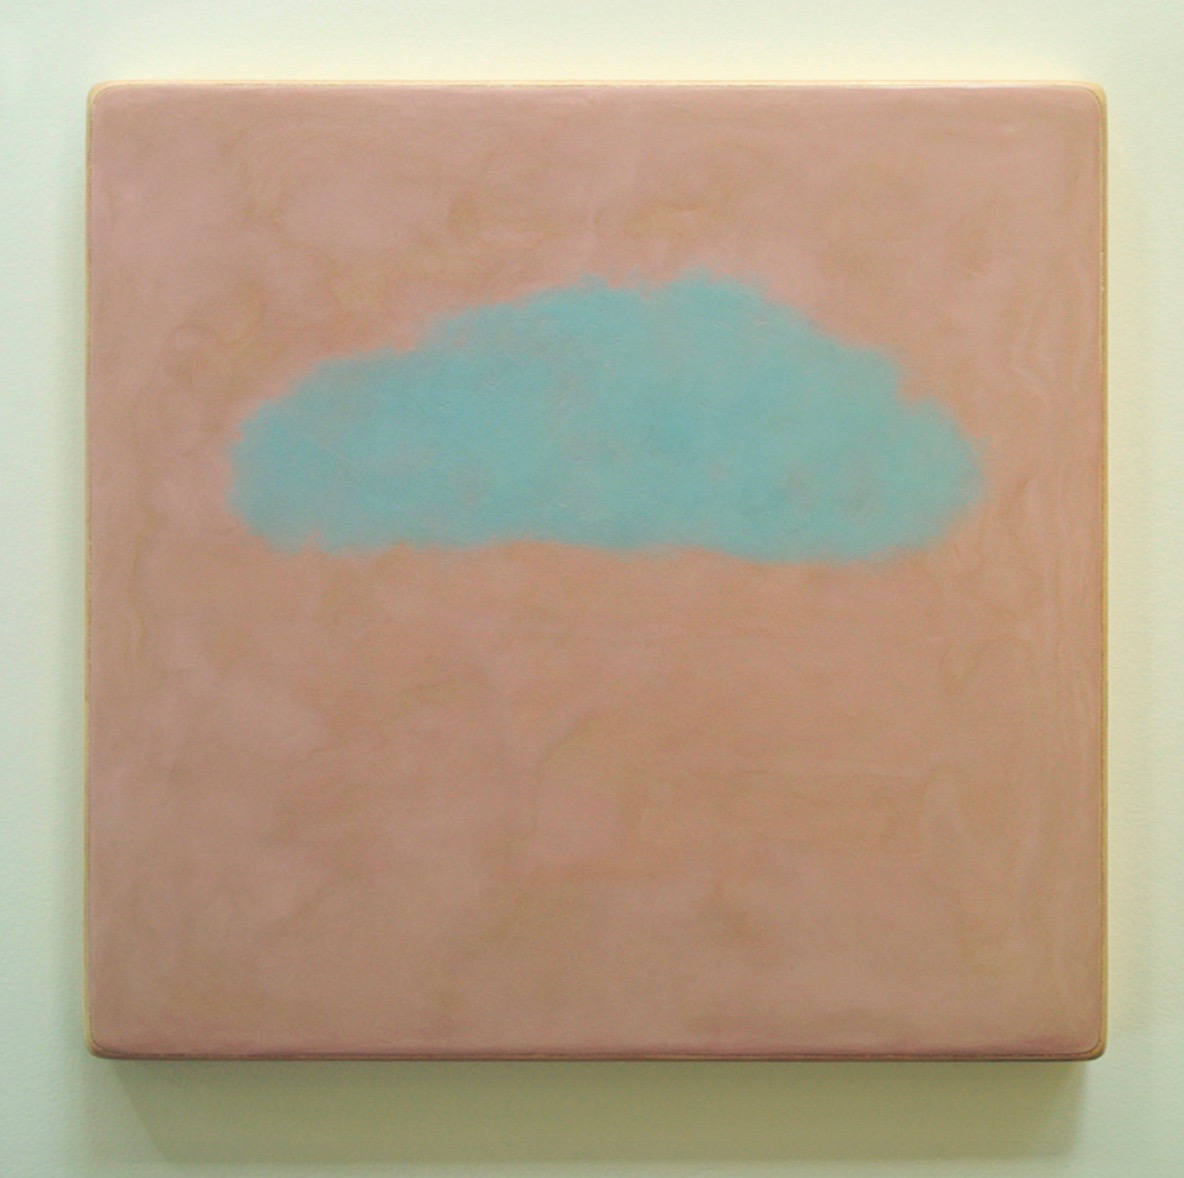 Kat Shapiro Wood  Hover, encaustic on board, 30 x 30 cm